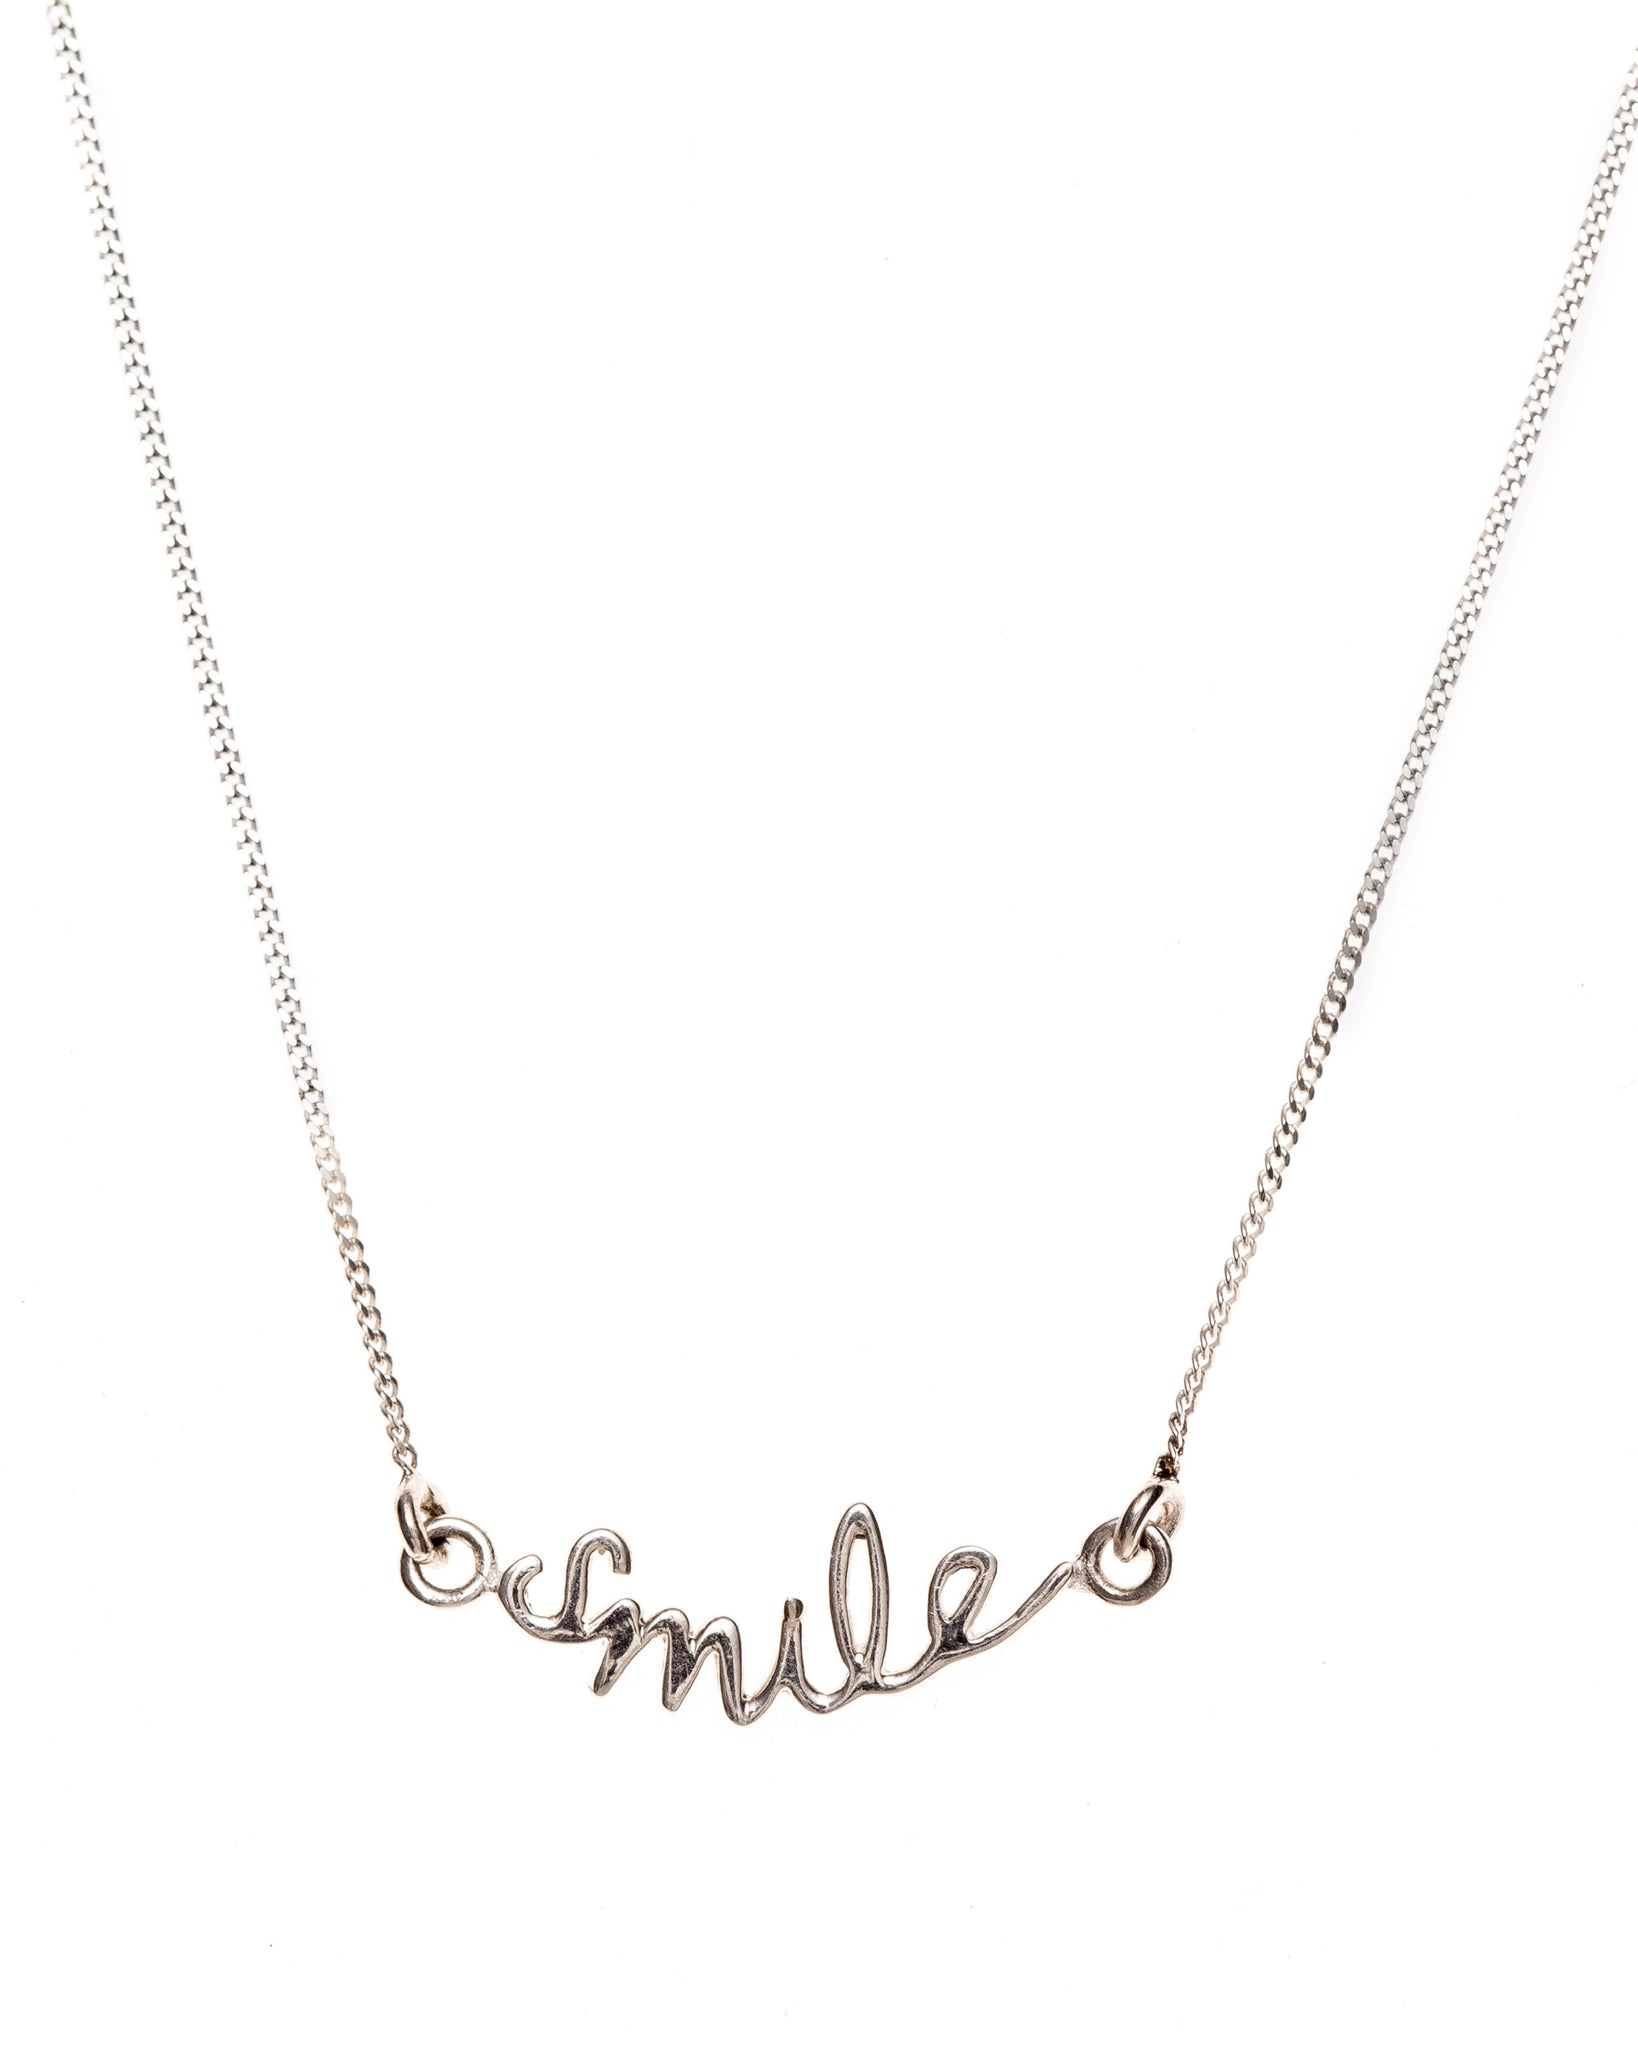 Smile Pendant in support of Smile Foundation